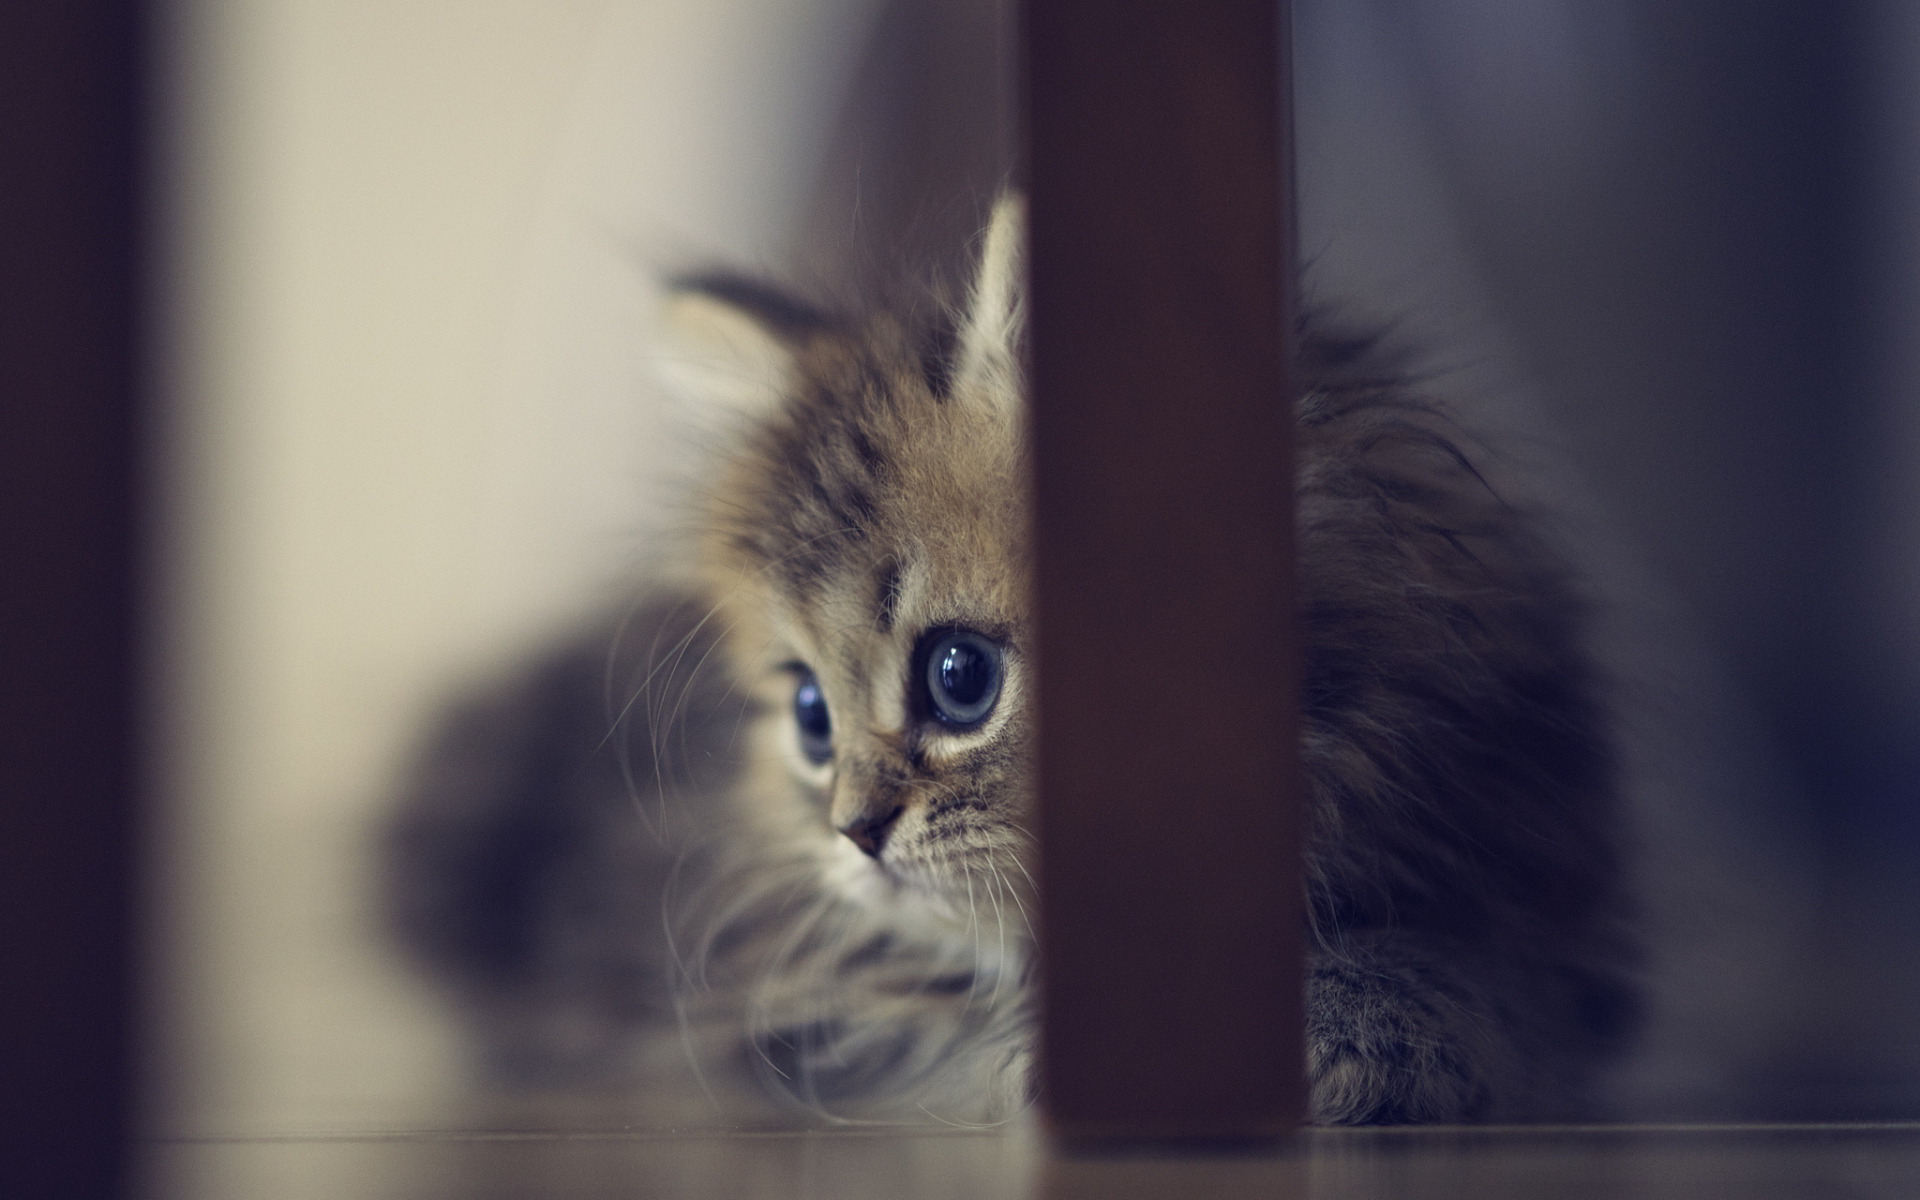 Cute kitten wallpaper free download hd desktop wallpapers 4k hd timeline thecheapjerseys Gallery